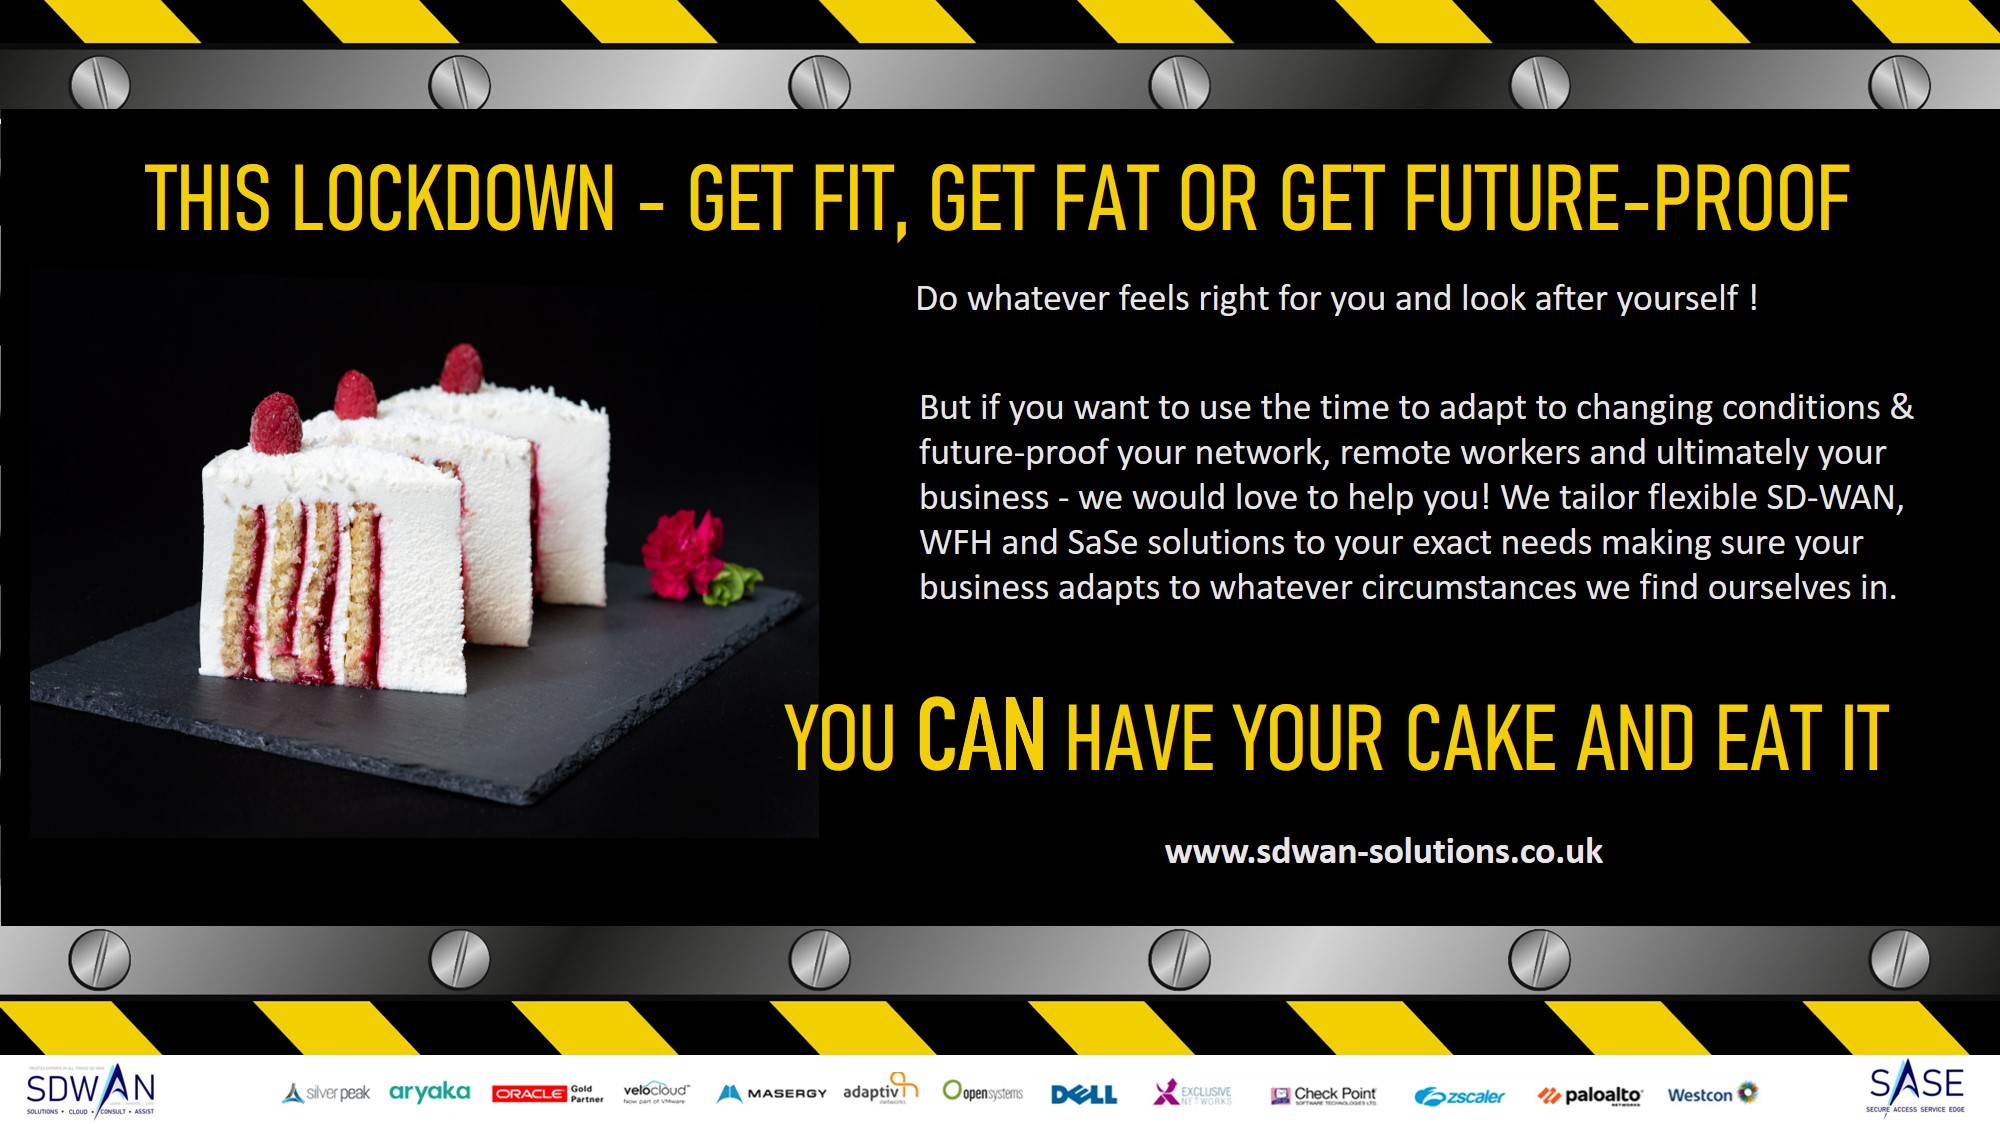 You can have your cake and eat it with SD-WAN